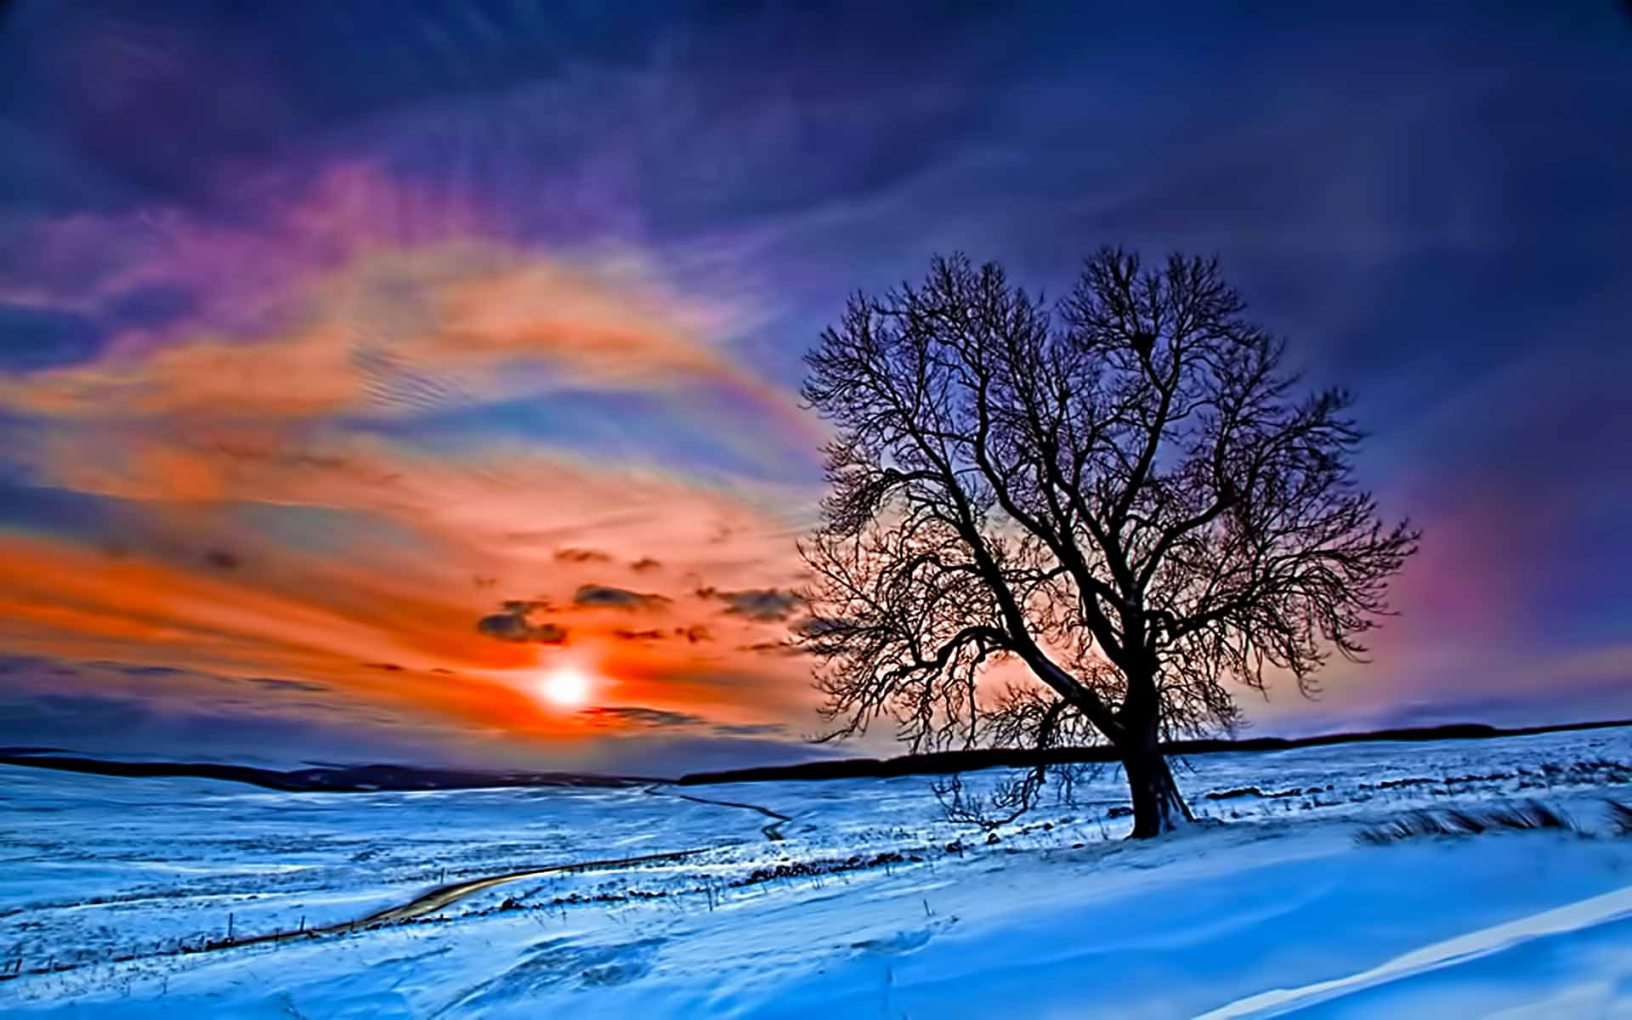 awesome nature wallpapers winter - photo #8